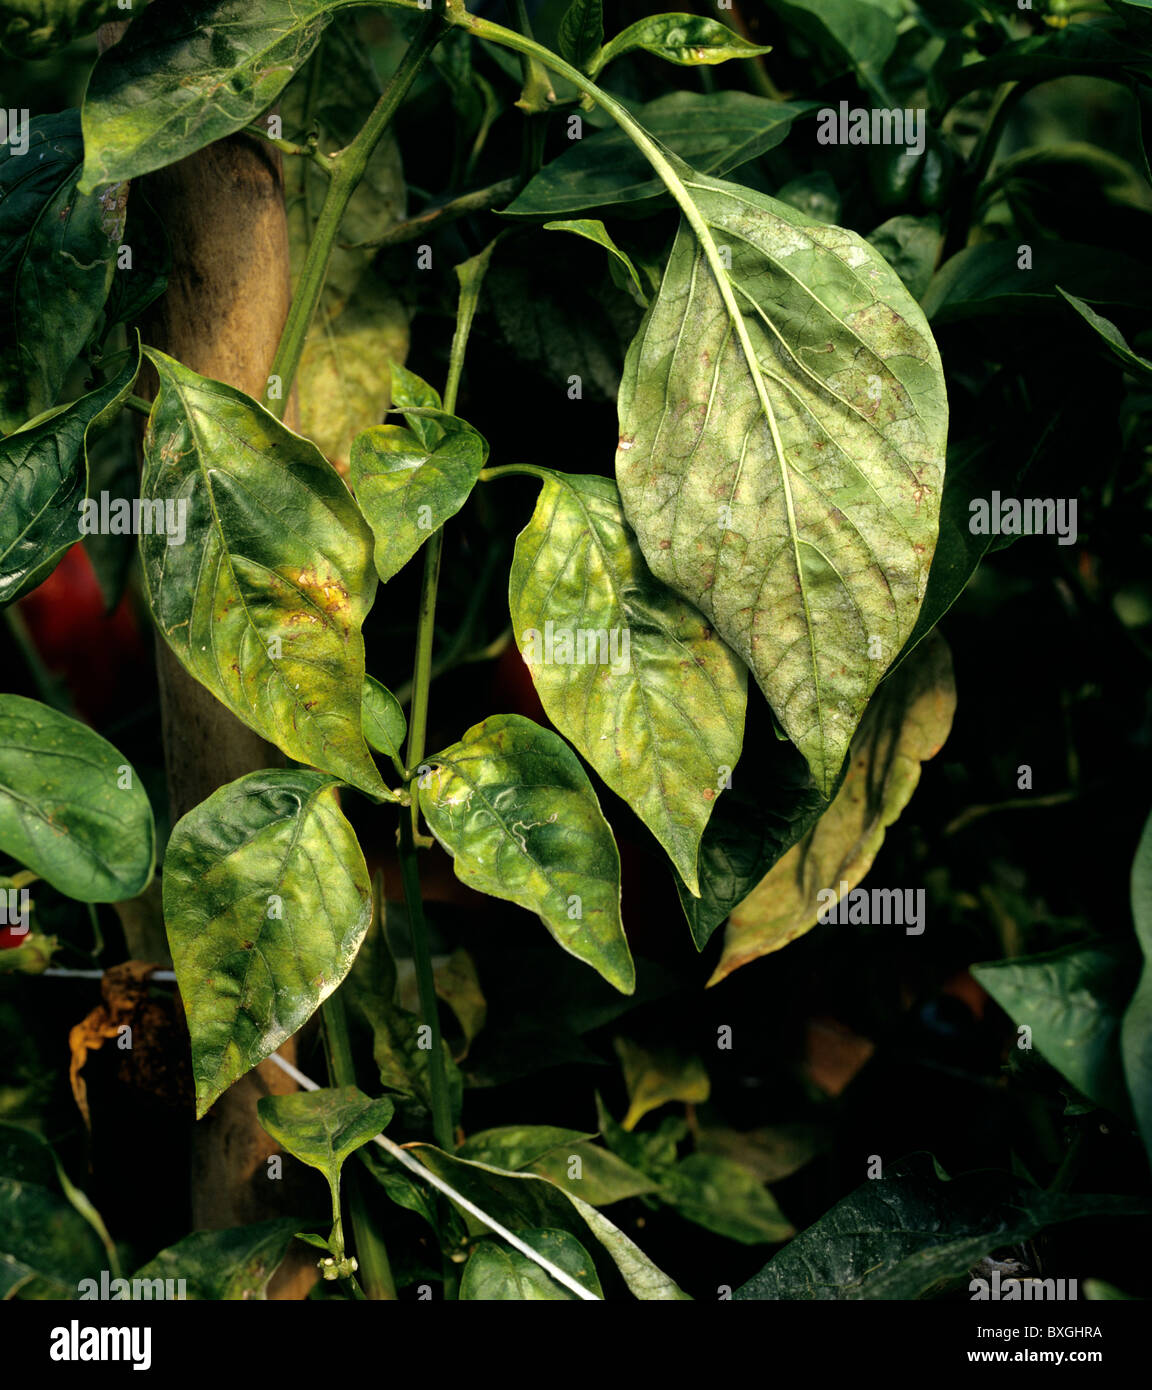 Powdery mildew (Leveillula taurica) infection on sweet pepper leaf, Portugal - Stock Image